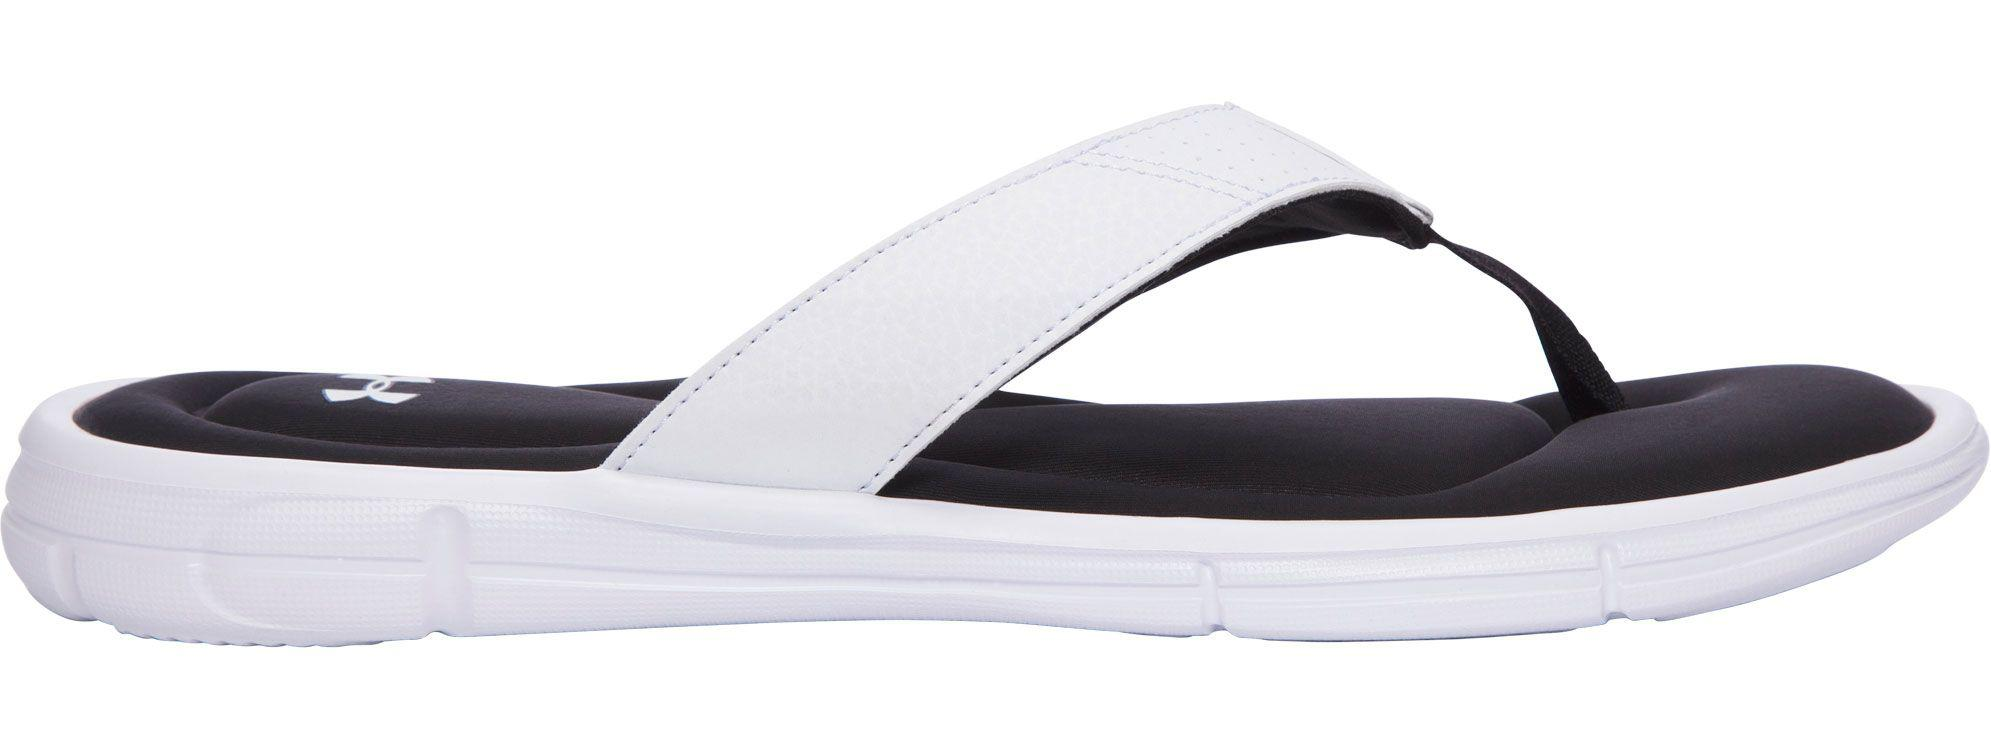 fd3f617c103a Lyst - Under Armour Ignite Ii Thong Flip Flops in White for Men ...